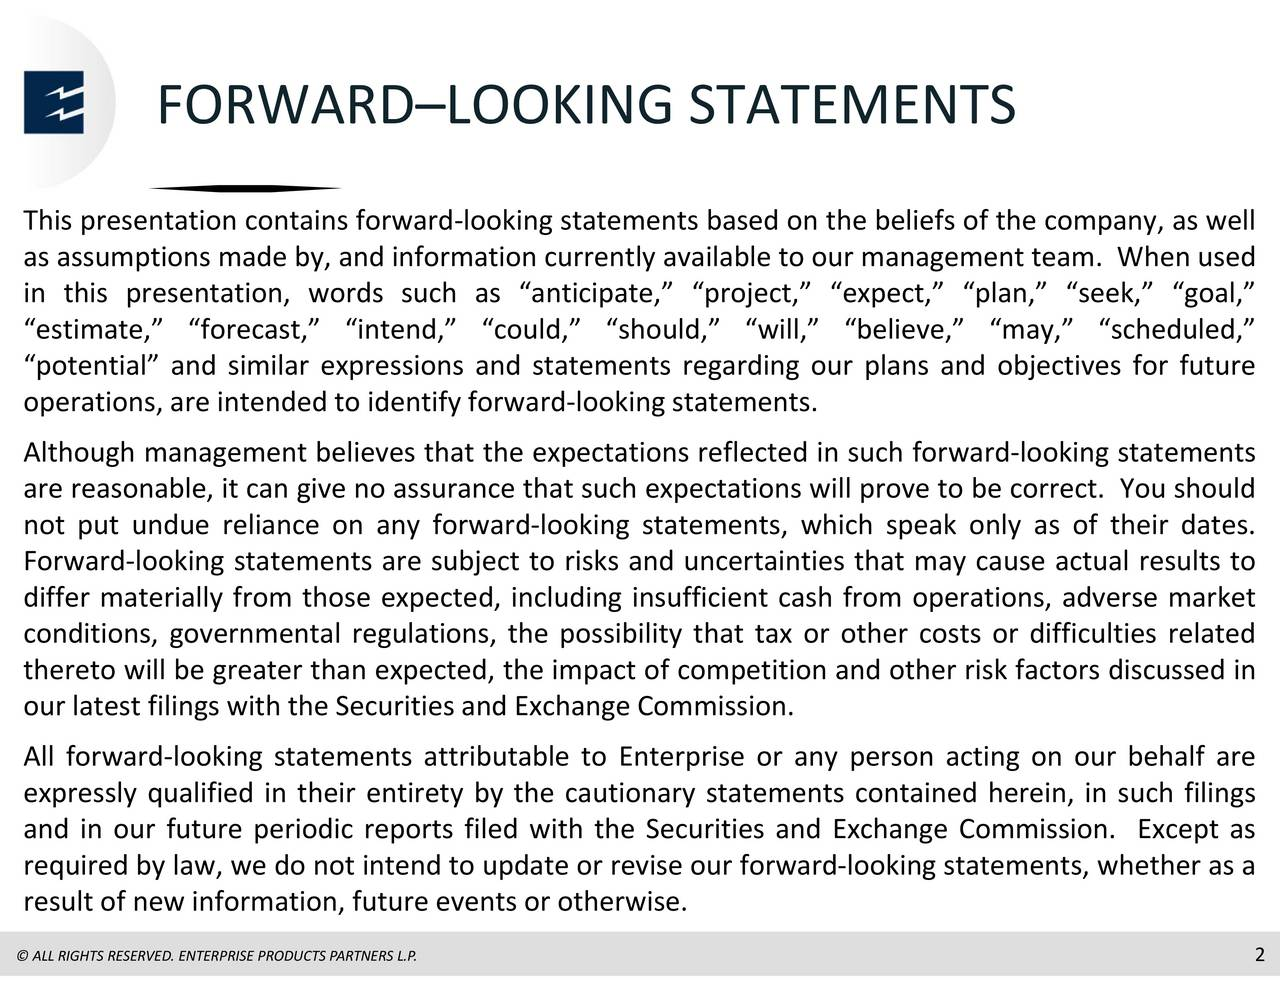 ooking statements ooking statements, whether as a STATEMENTS ncertainties that may cause actual results to ,ar ould, will,expectationsility that tax or other costs or difficulties related tly available to our management team. When usee Securities and Exchange Commission. Except as looking statements. xpectalooking statements, which speak only as of their dates. ooking statements based on the beliefs of the company, as well .P. ARTNERS RODUCTS ooking statements attributable to Enterprise or any person acting on our behalf are FORWARDLOOKING looking statements are subject to risks and u ESERVED. IGHTS Thiasisstmsimortsmiaoin,a,emdifeormhttersalefvrrnnslyweulfpndaicpices